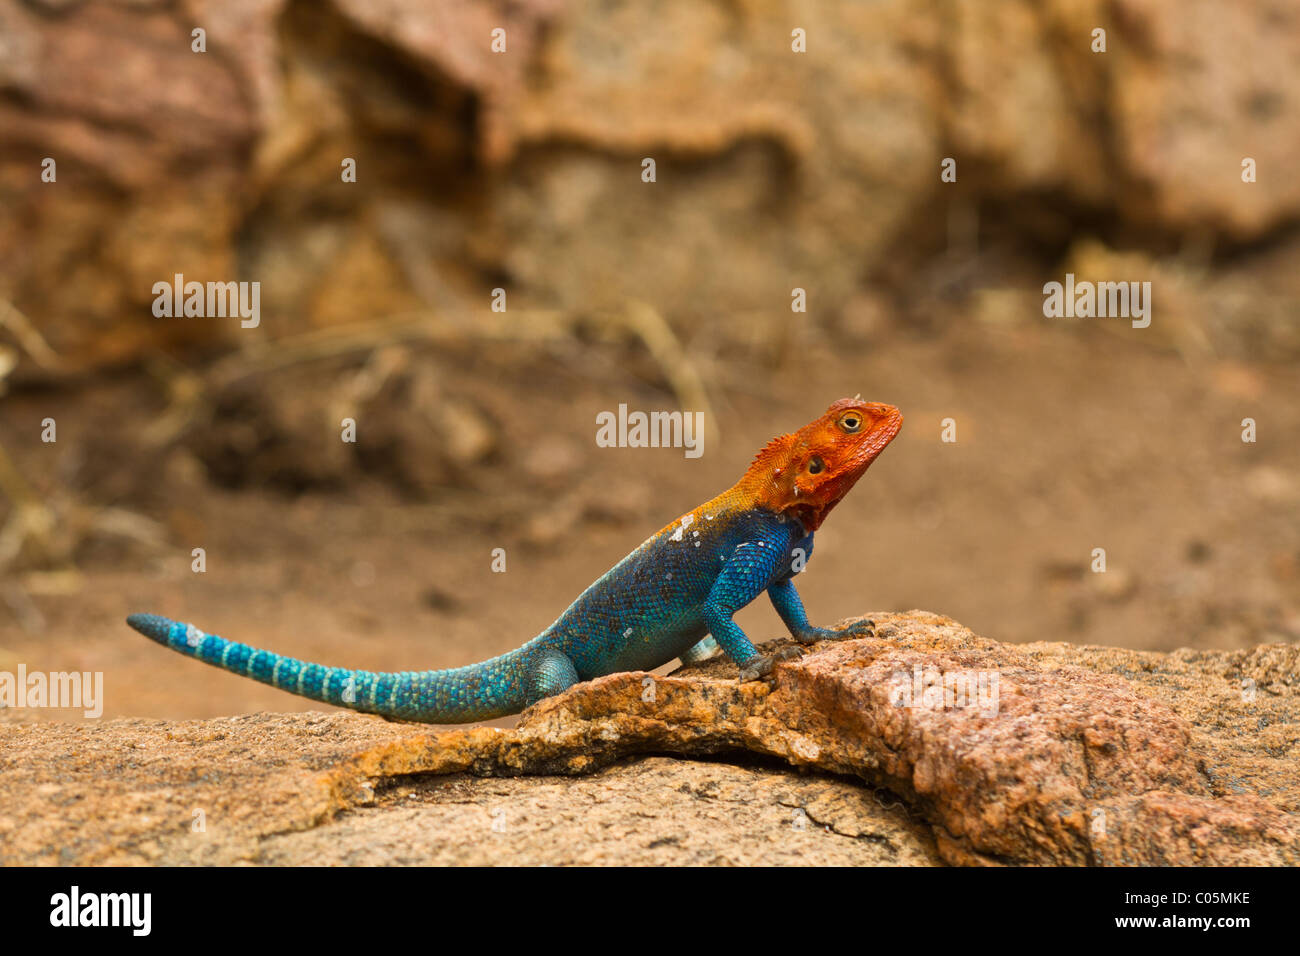 A male agama lizard warming himself on a sandy coloured rock in the Kenyan morning sun. The lizard is bright blue - Stock Image